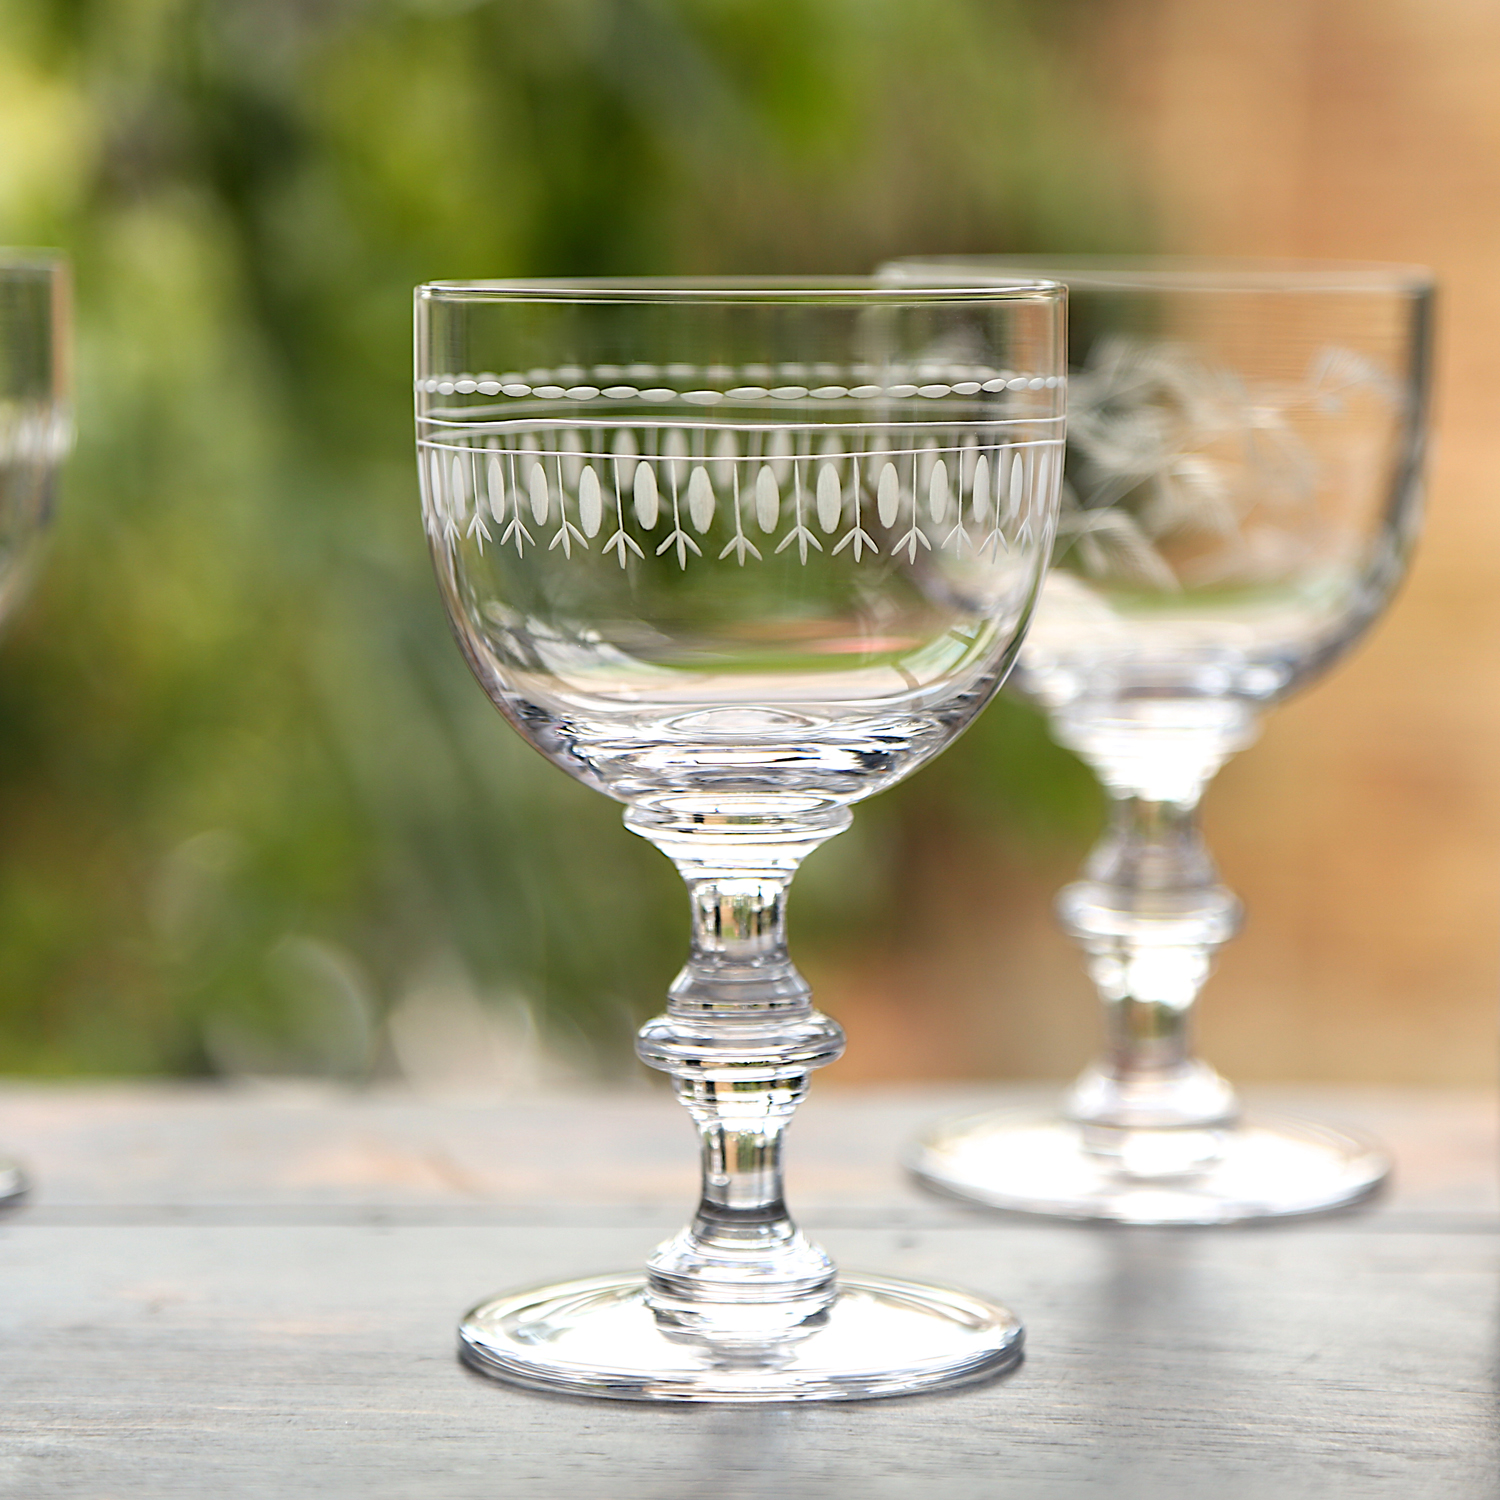 WINE GOBLETS   This glass has a sturdy, baluster stem and a much more delicate bowl.